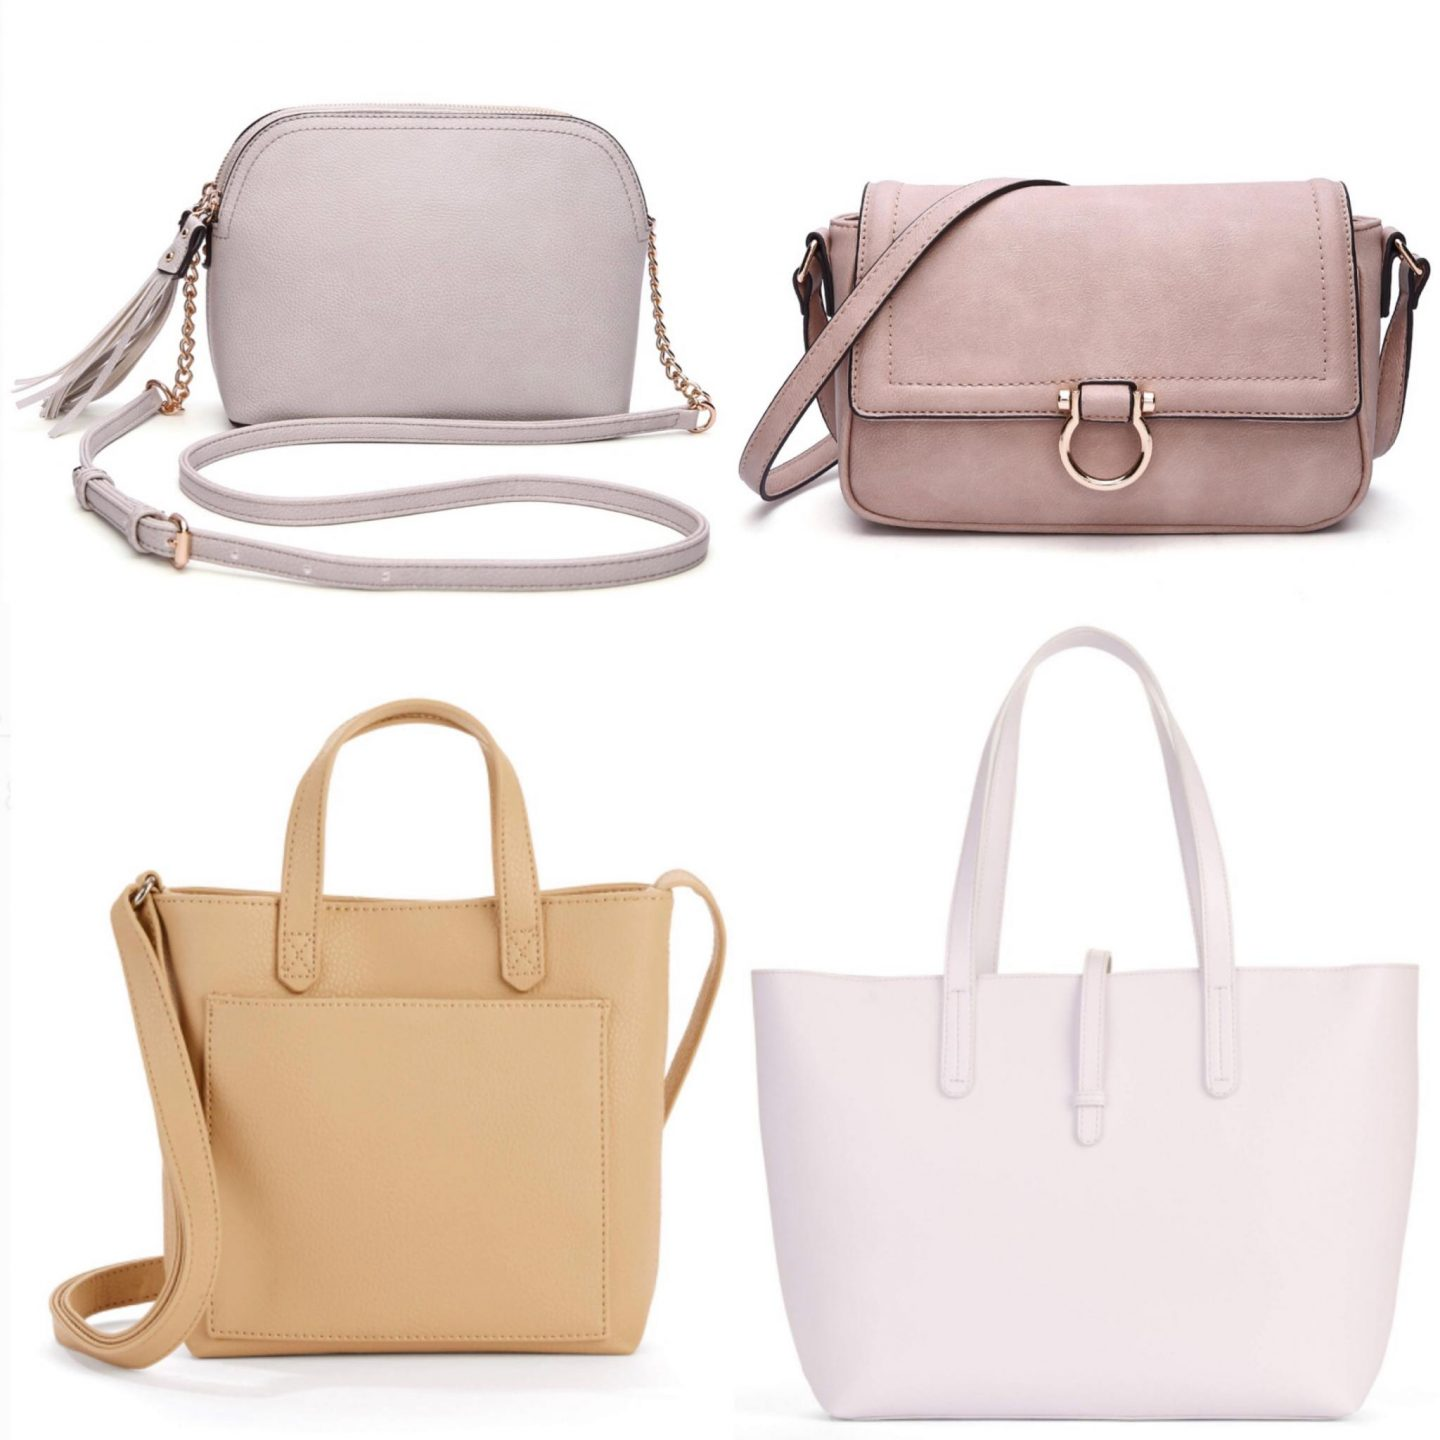 Cute and affordable spring bags from Walmart